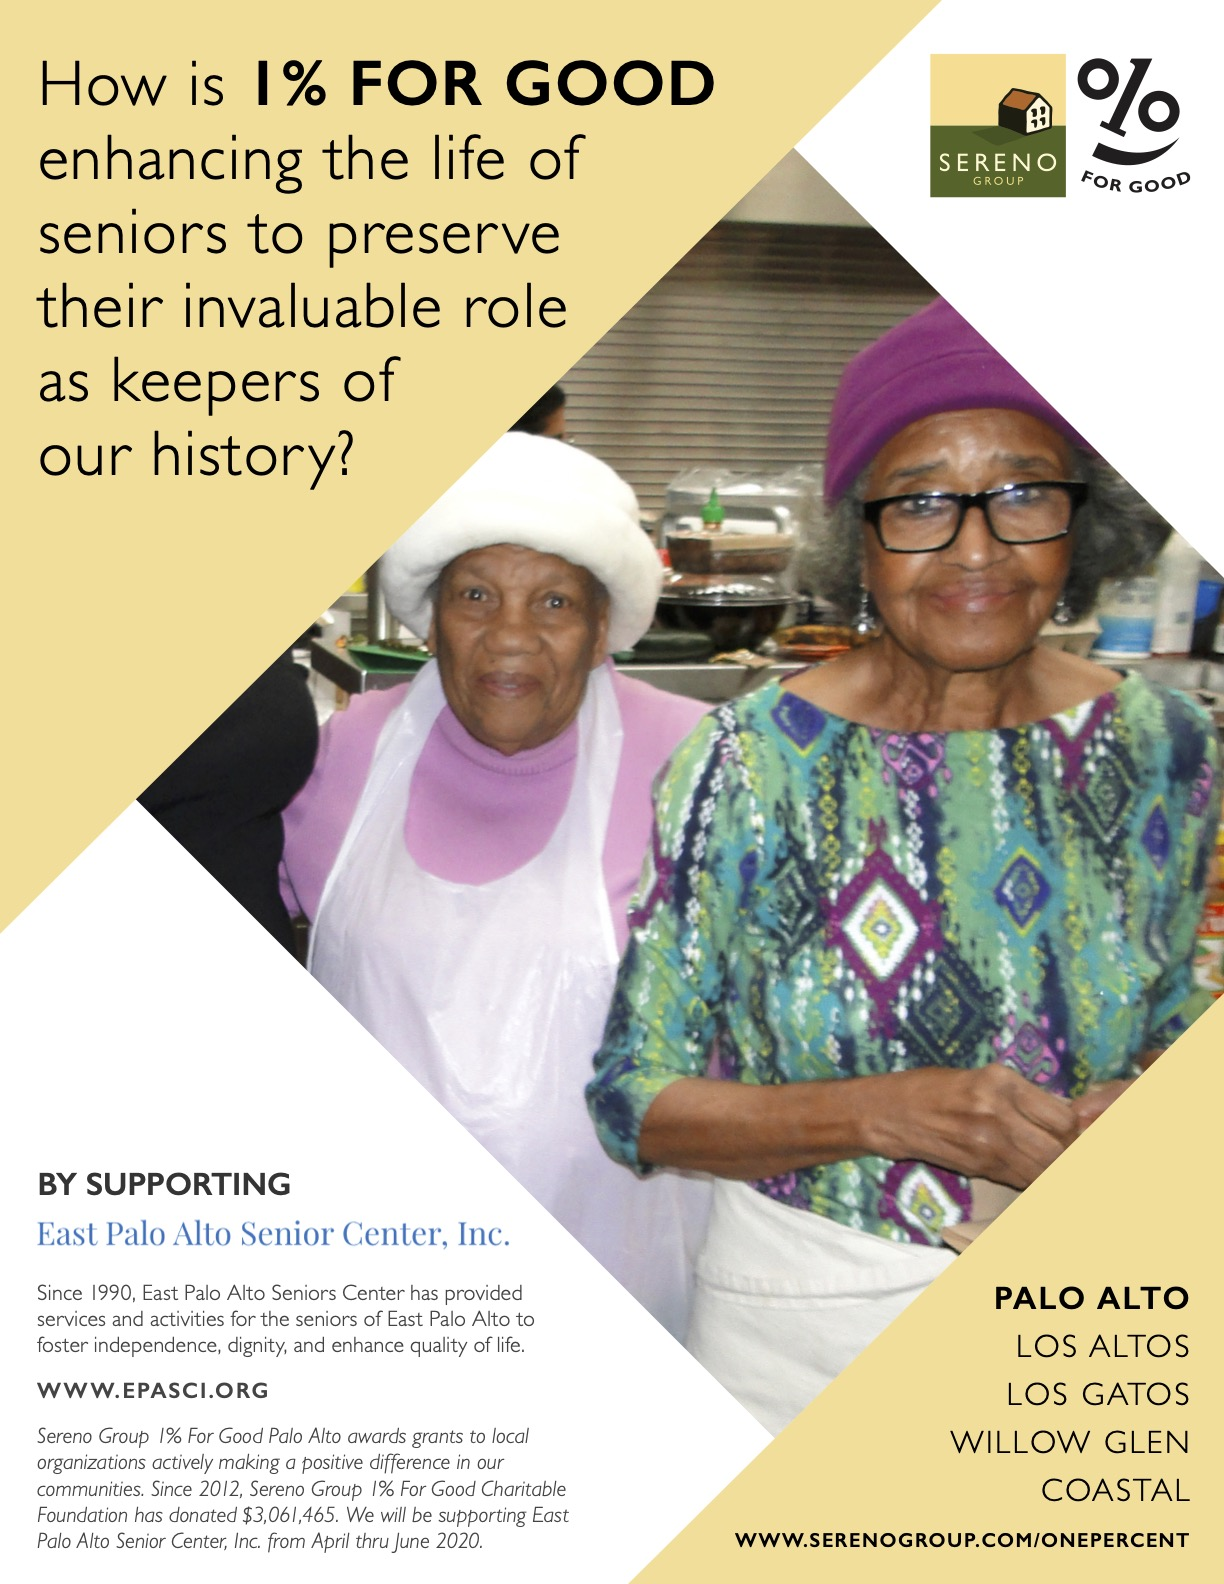 Sereno_OnePercent_PA_EastPaloAltoSeniorCenter_OfficePrint